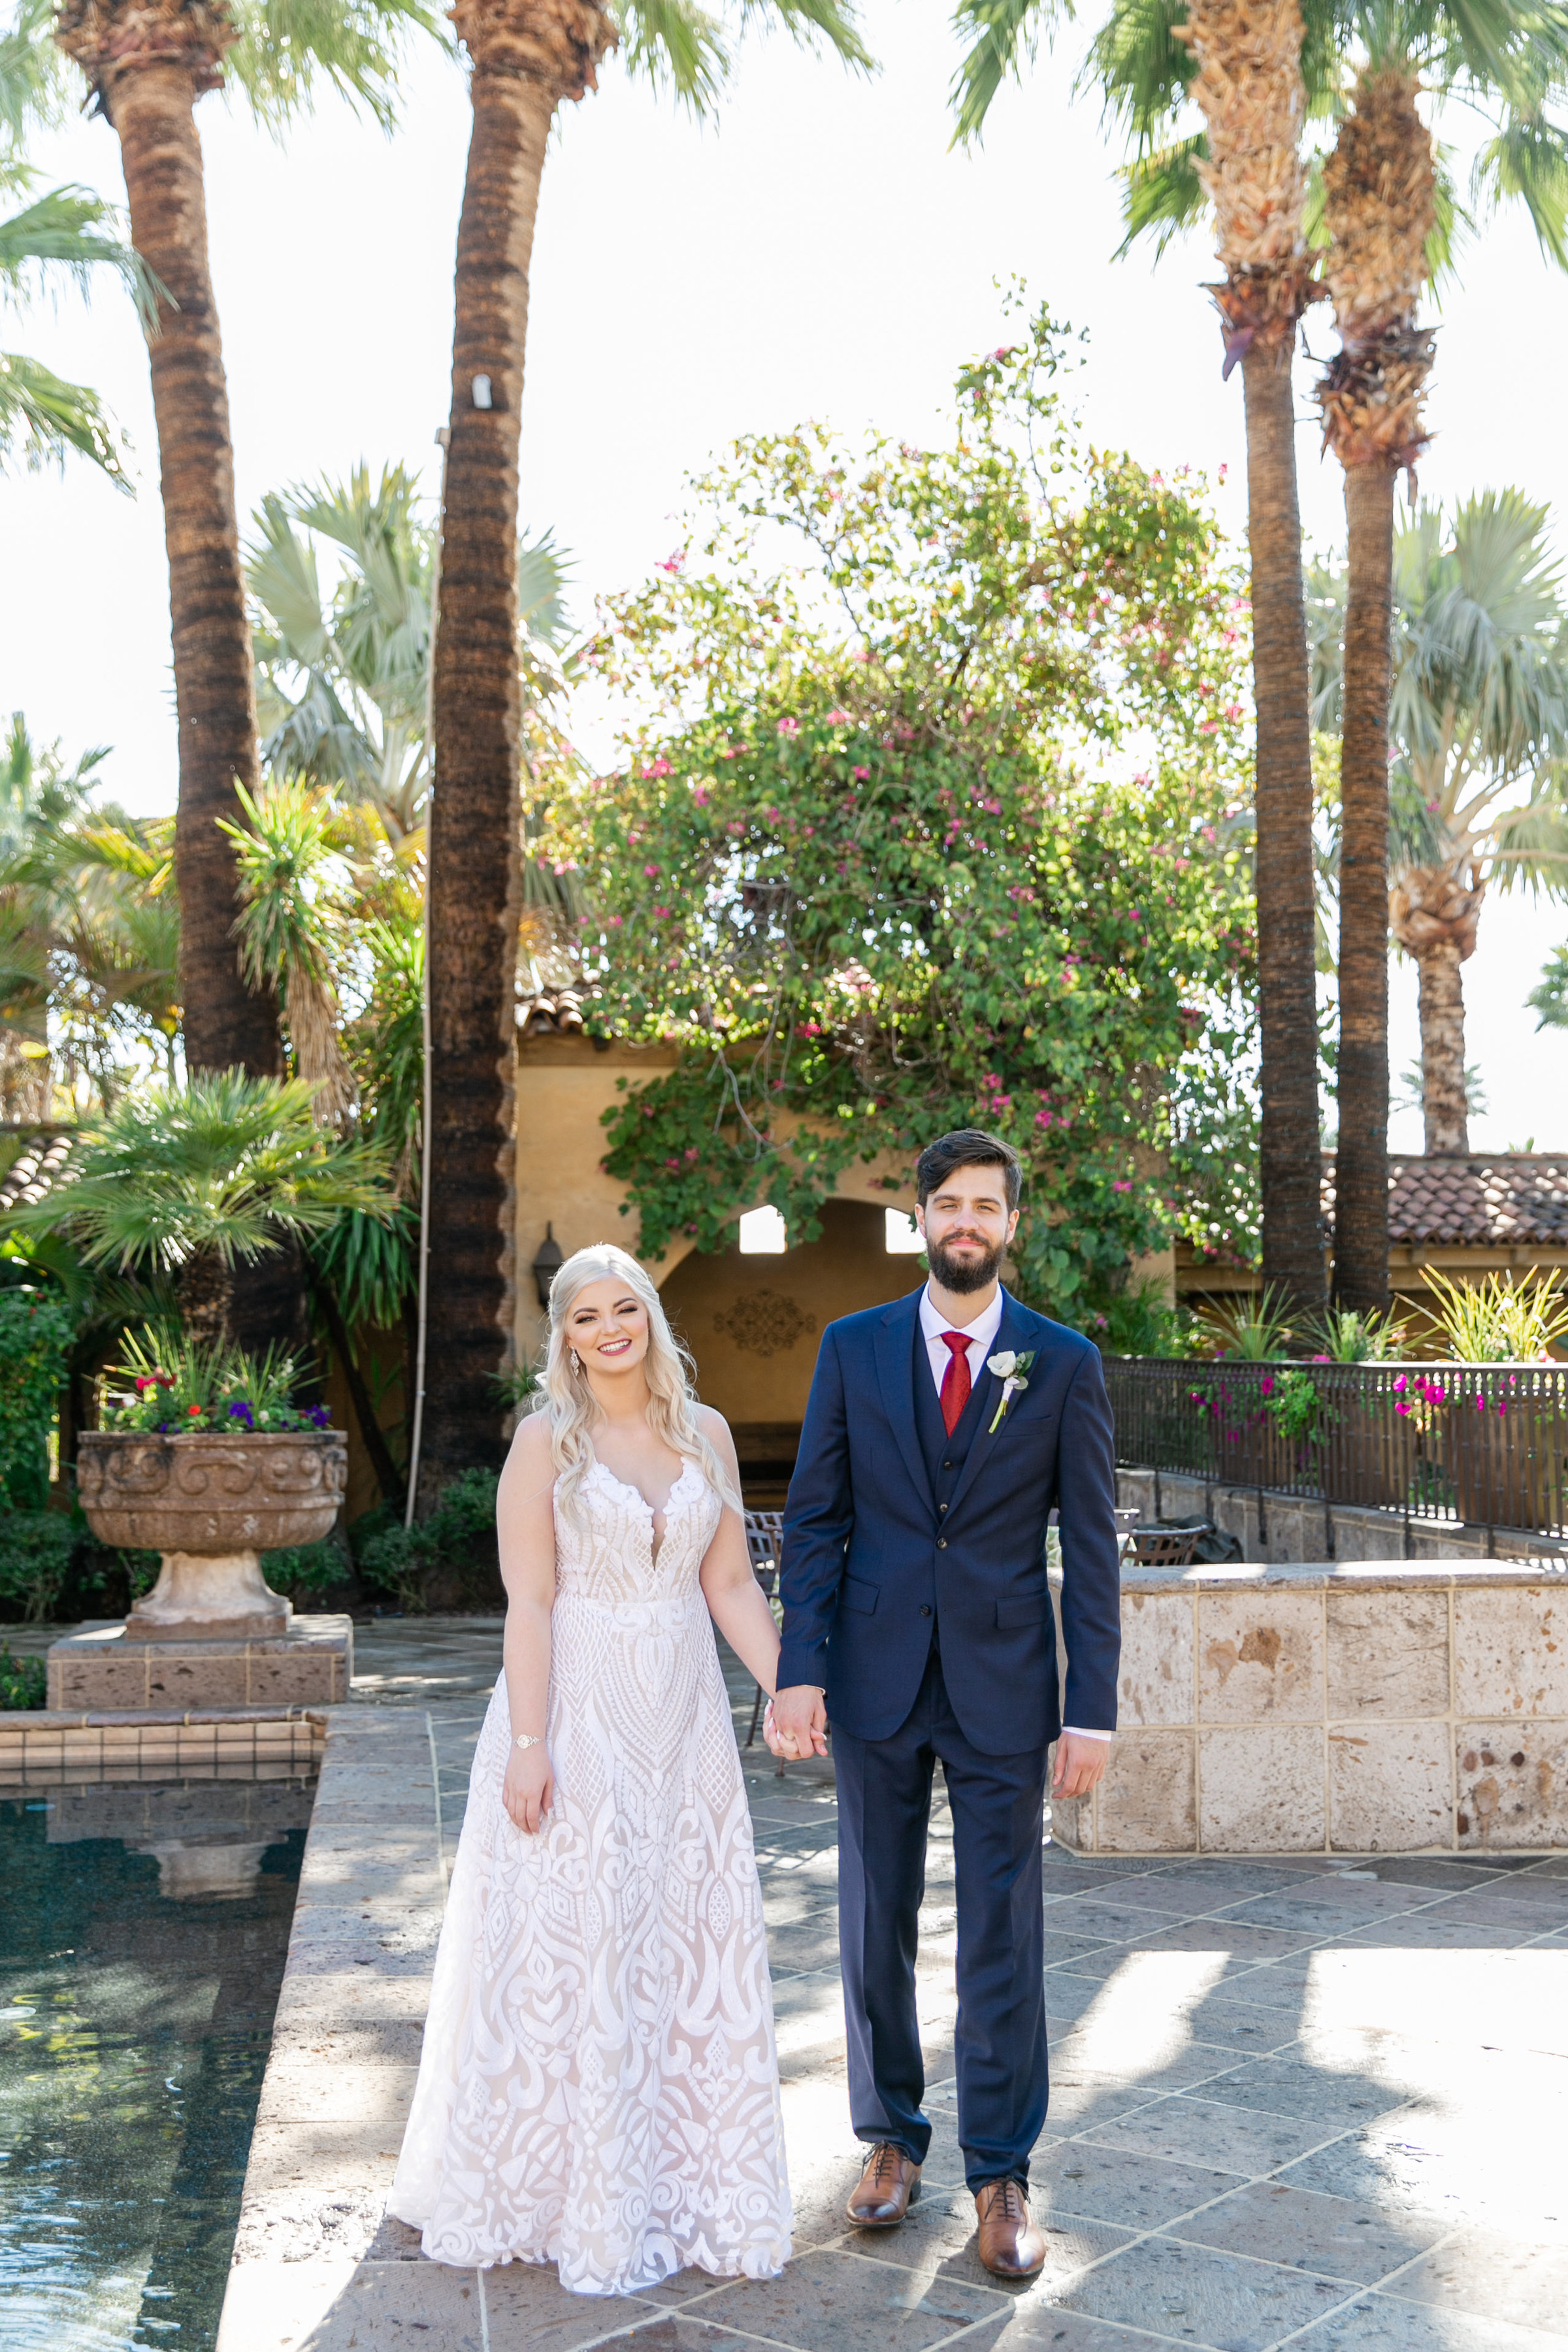 Karlie Colleen Photography - The Royal Palms Wedding - Some Like It Classic - Alex & Sam-135